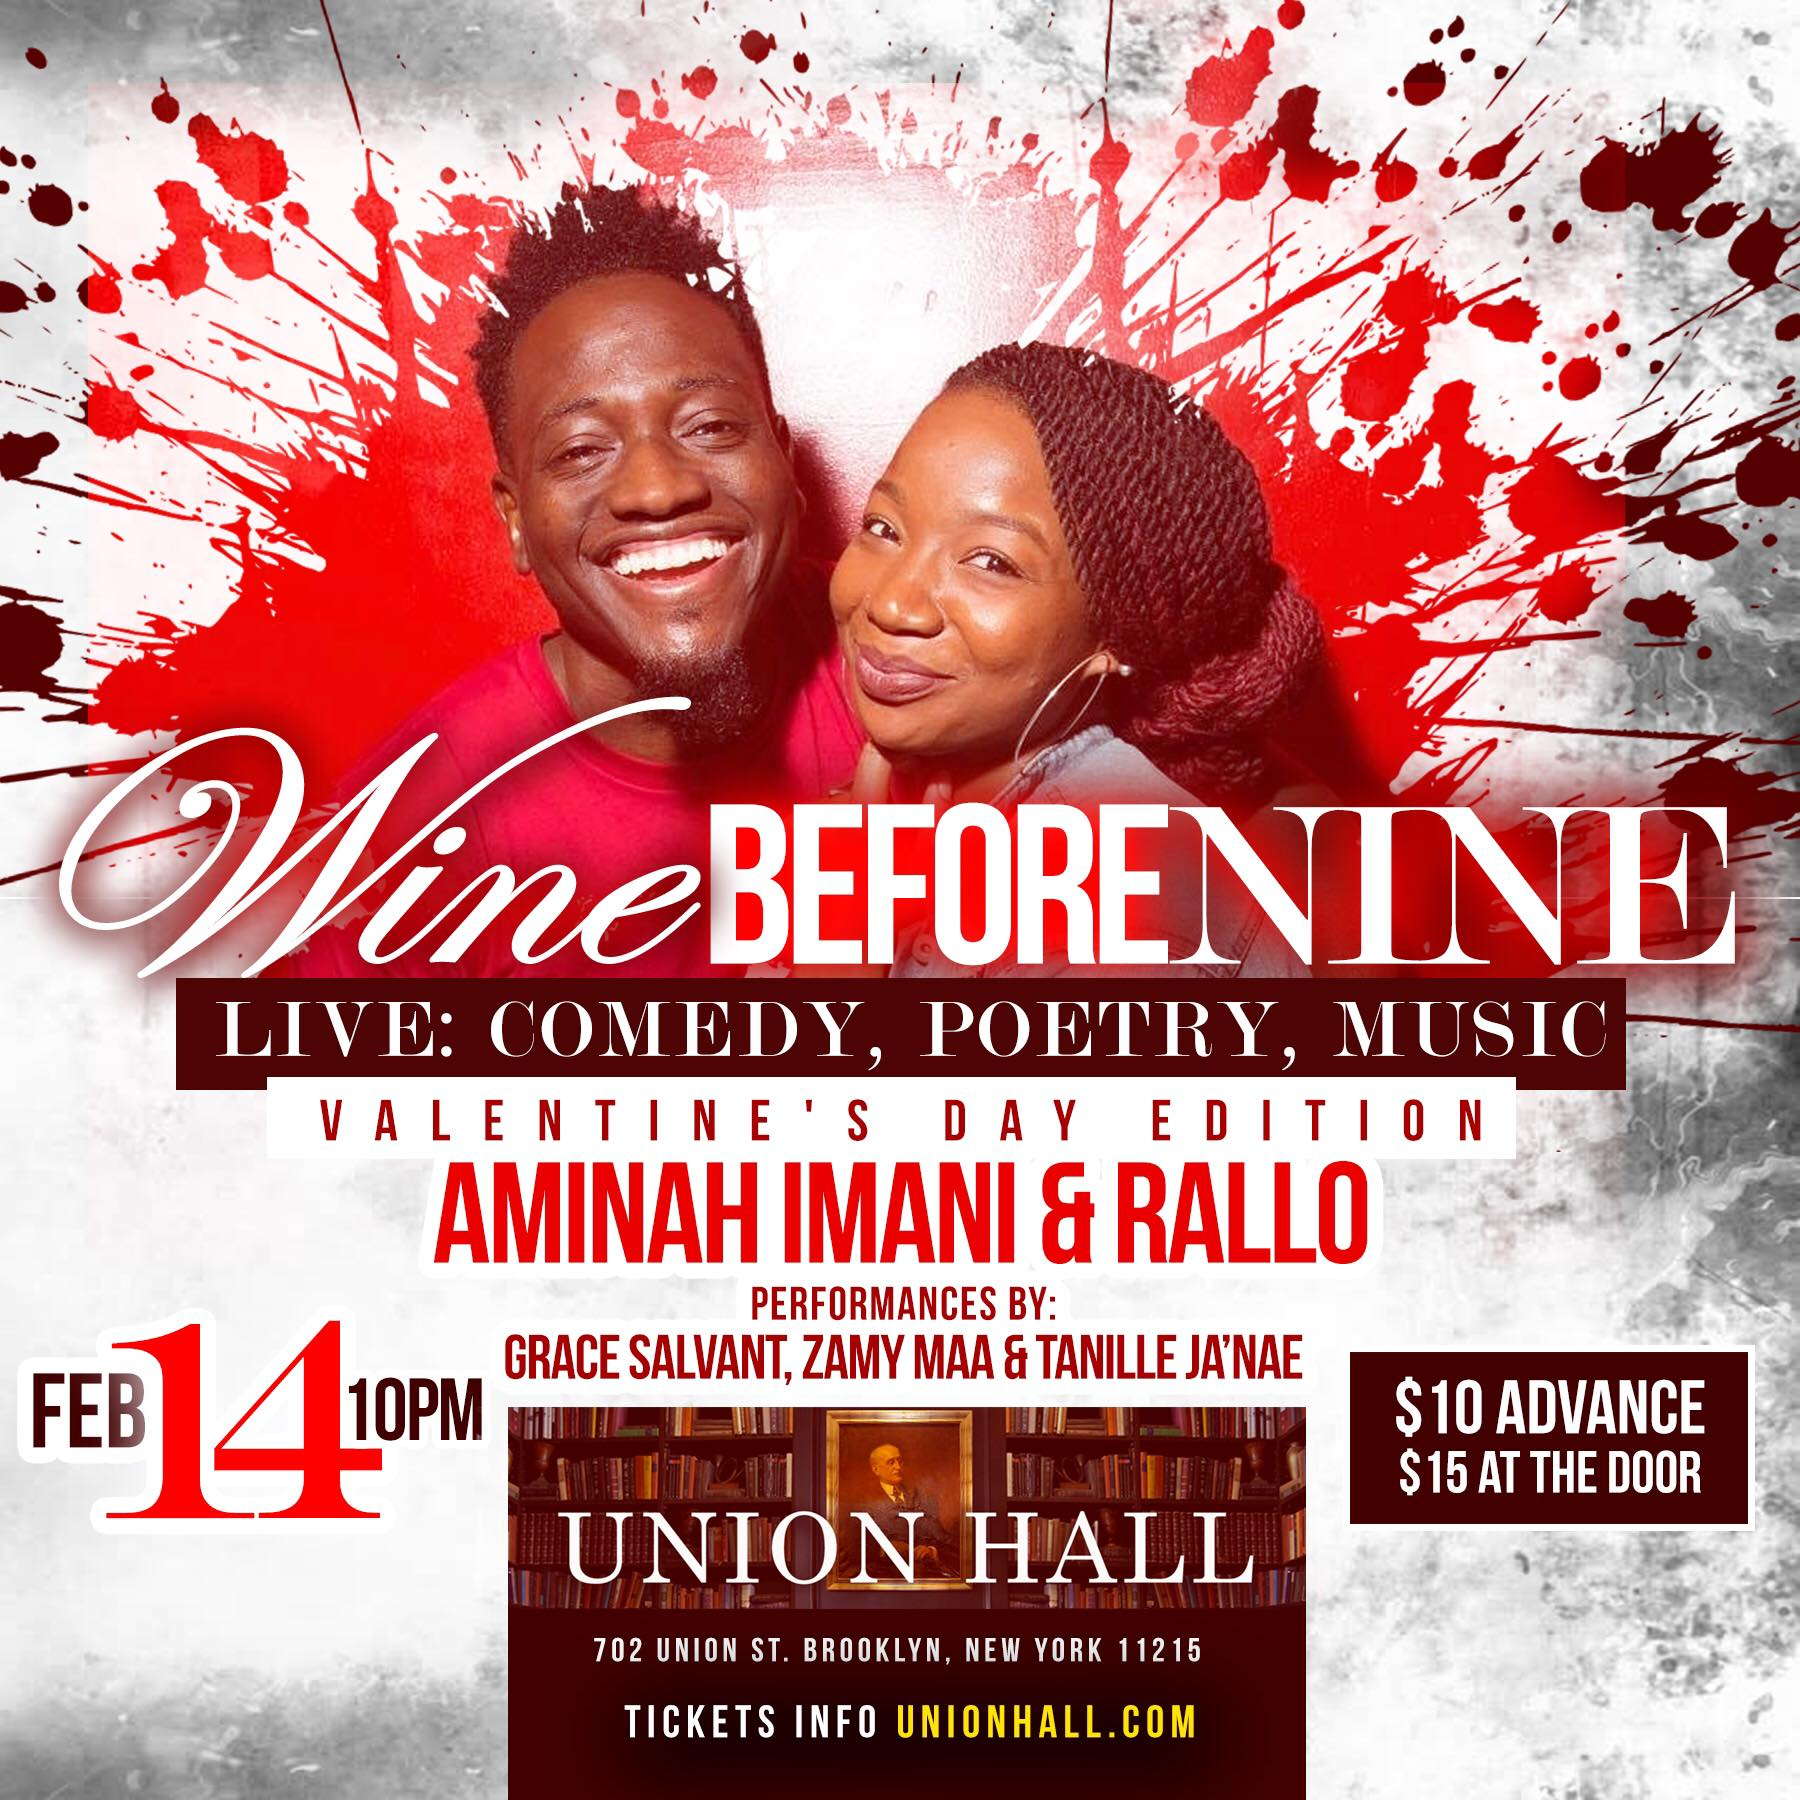 Wine Before Nine Live Thursday, Feb 14th 1o:oopm-11:3opm Union Hall | 702 Union St. | Brooklyn, NY 11215   Tickets